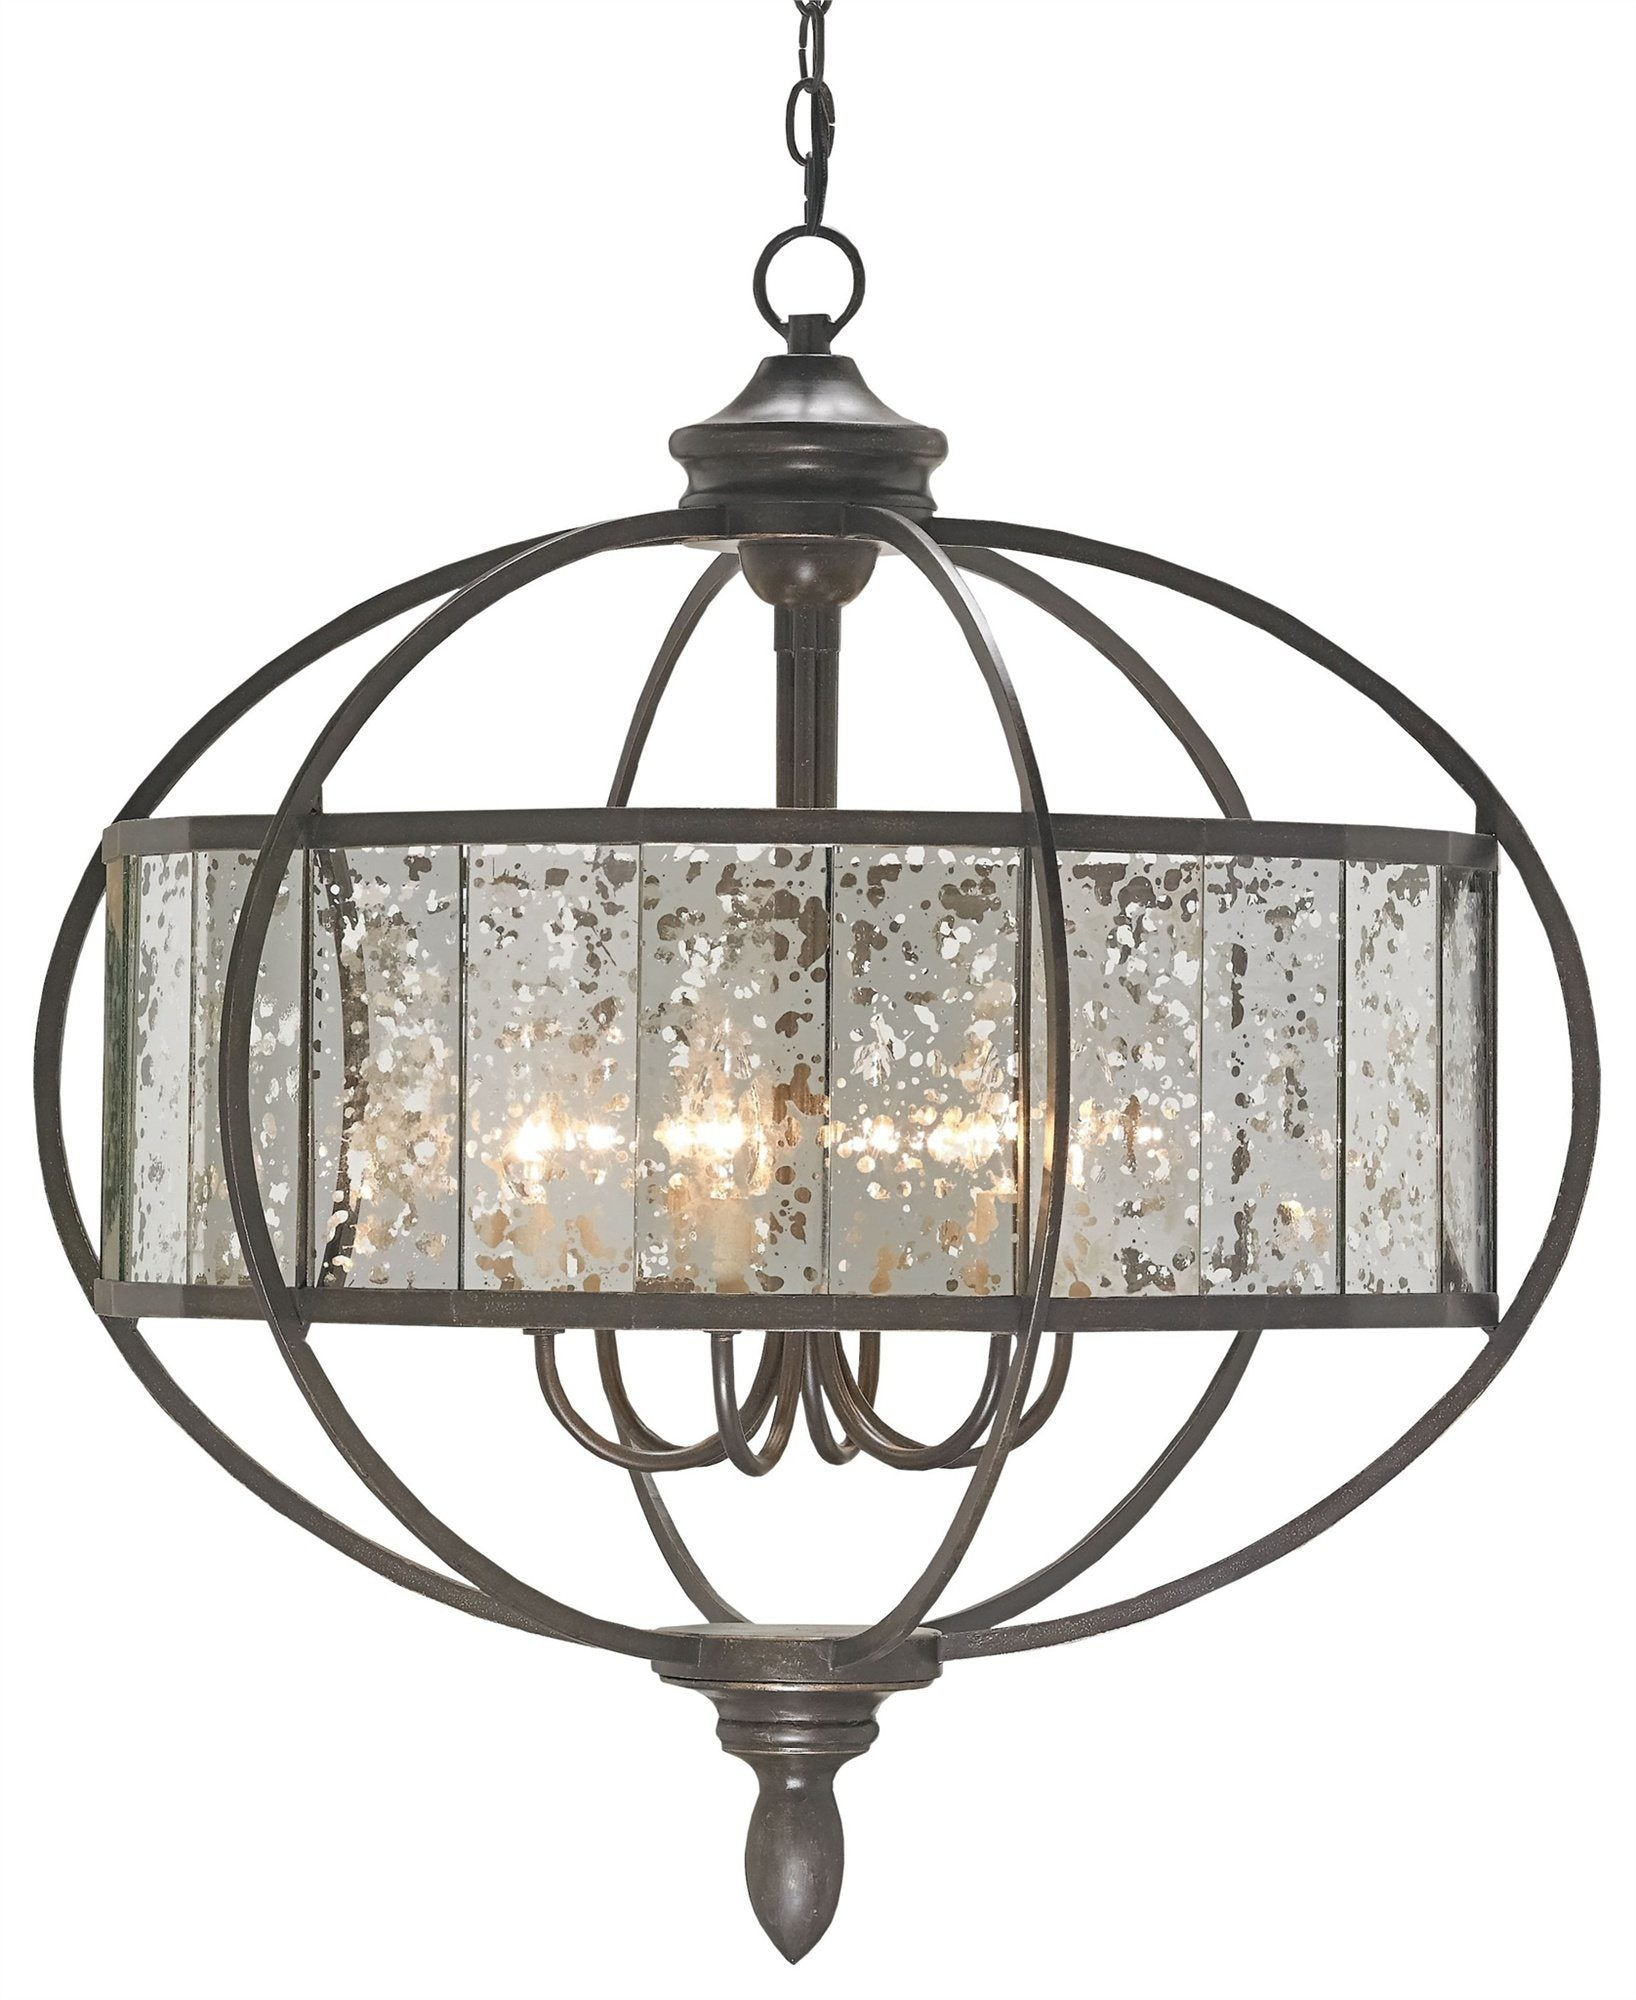 Currey and Company Florence Chandelier 9330 - LOVECUP